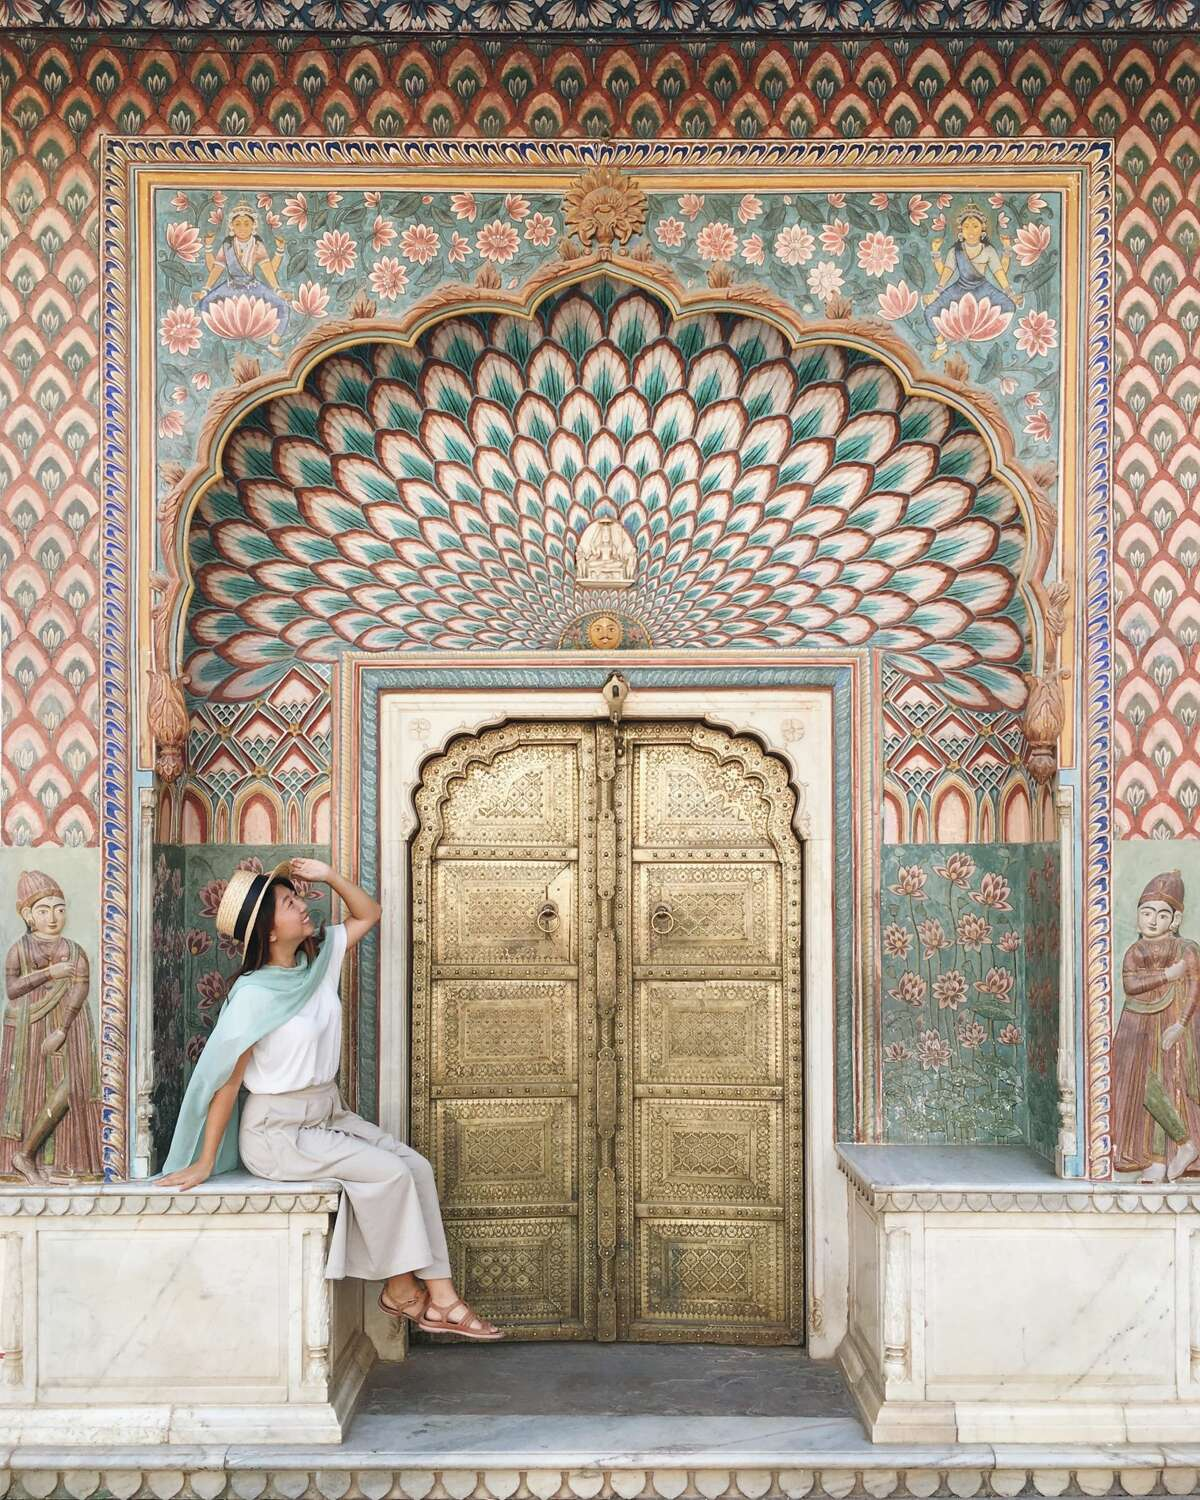 TJ Lee in Jaipur, India. Lee quit her tech job and embarked on a journey around the world. Followers can keep up with her travels via social media.